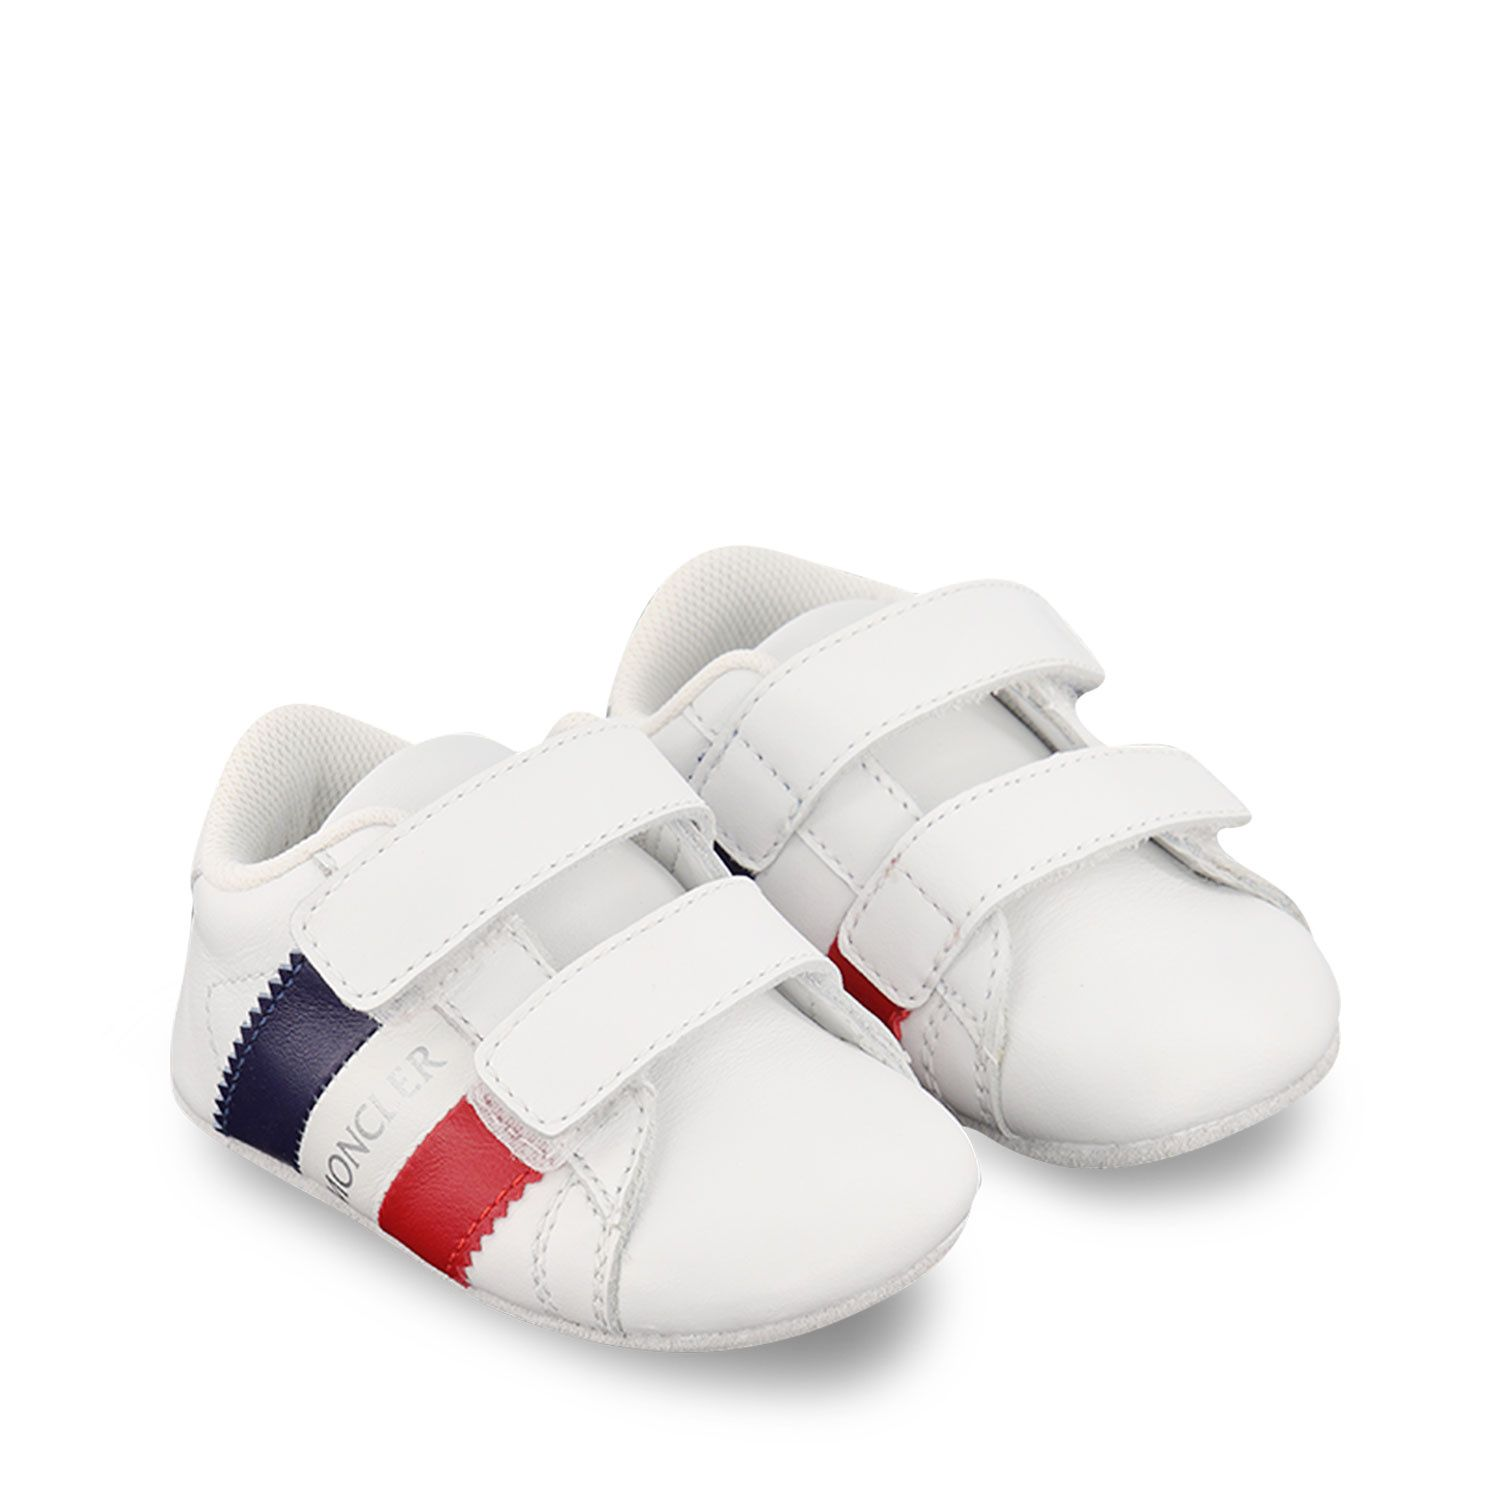 Picture of Moncler 4M70000 baby shoes white